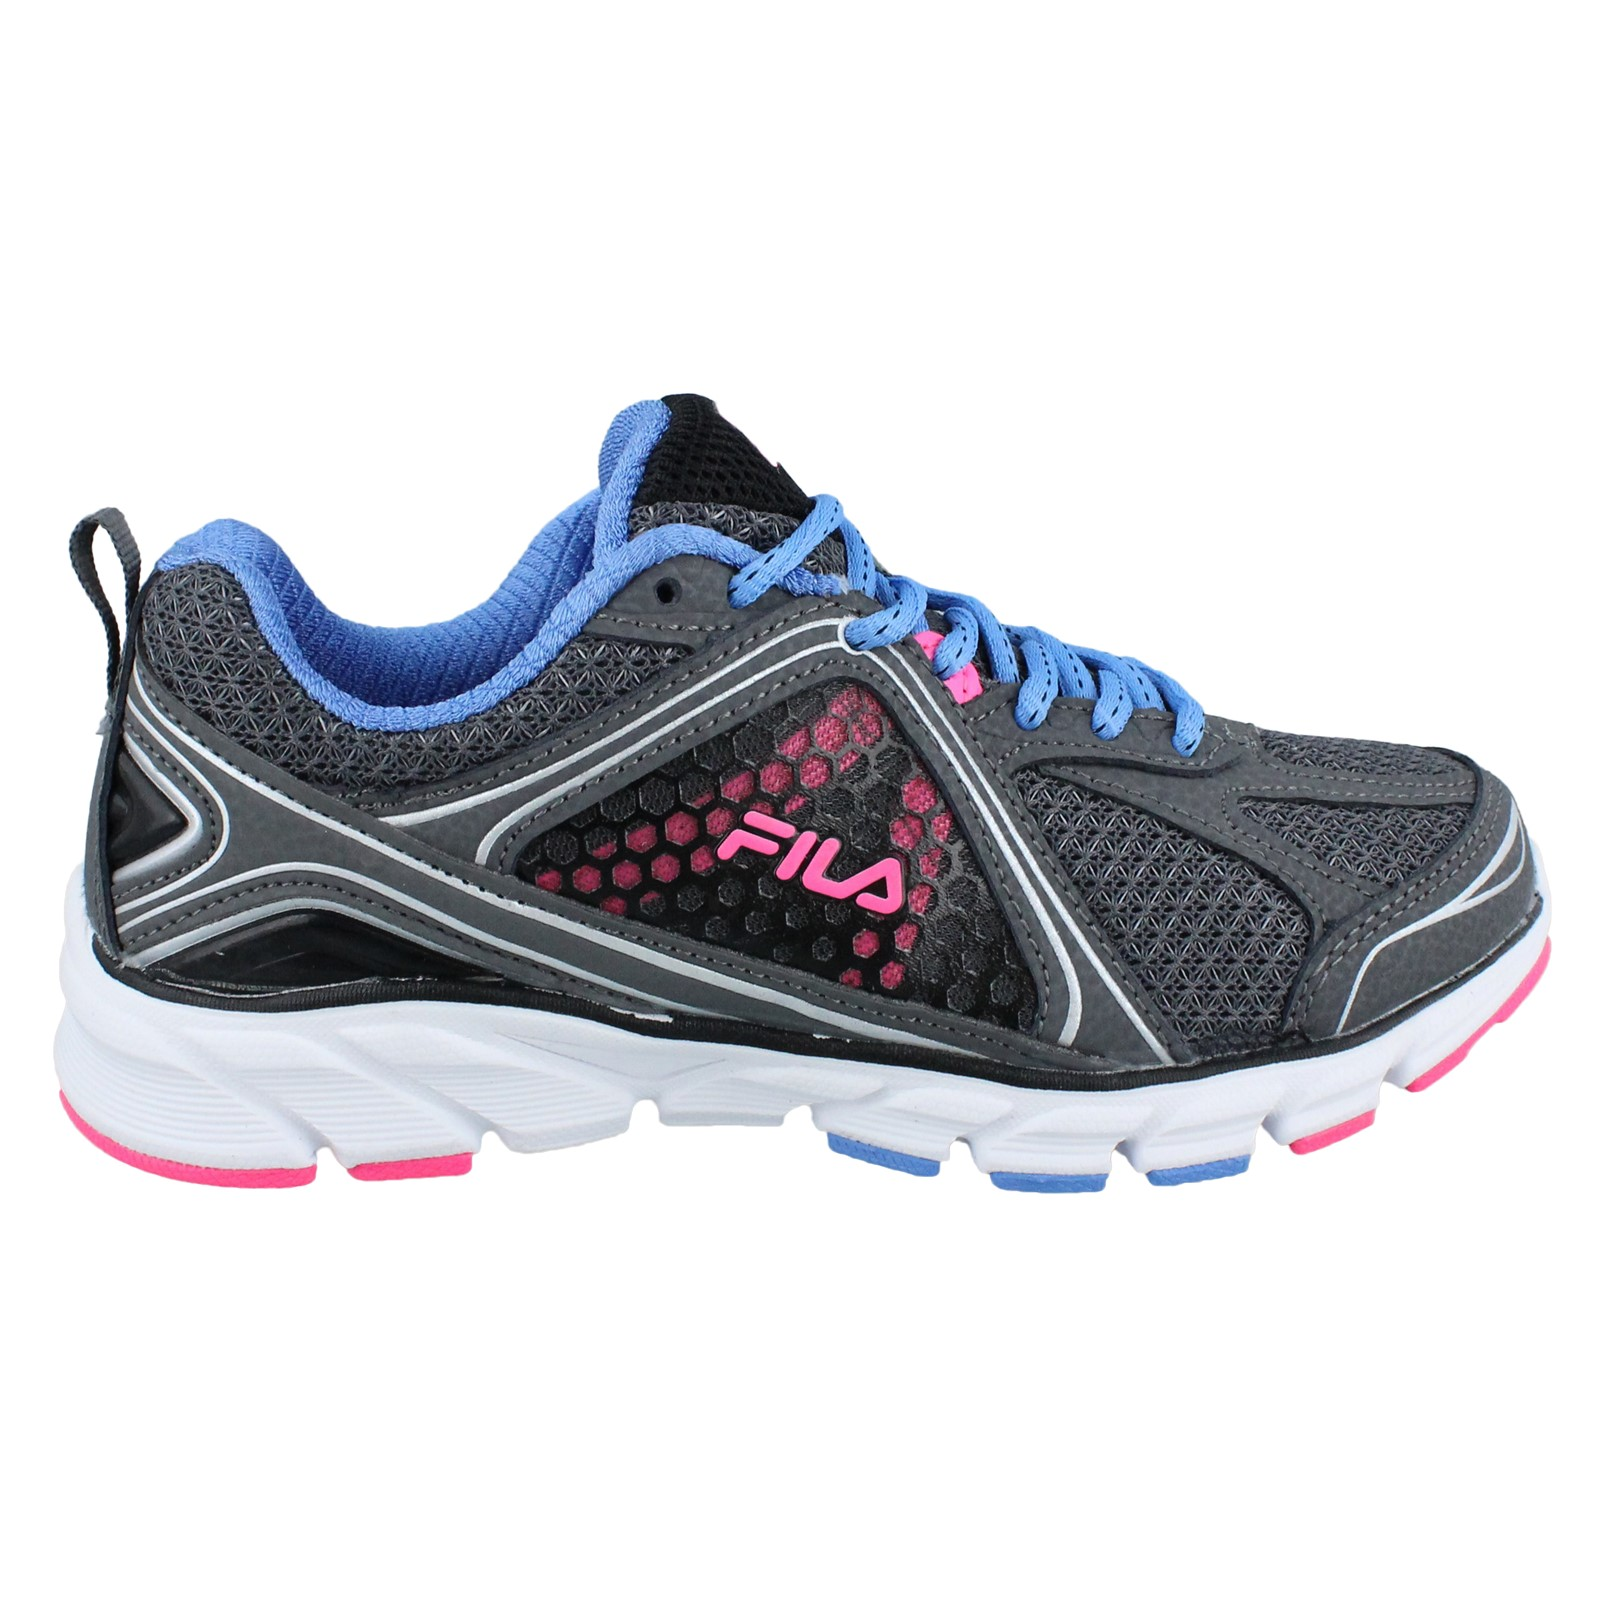 Women's Fila, Threshold 3 Lace up Running Sneaker